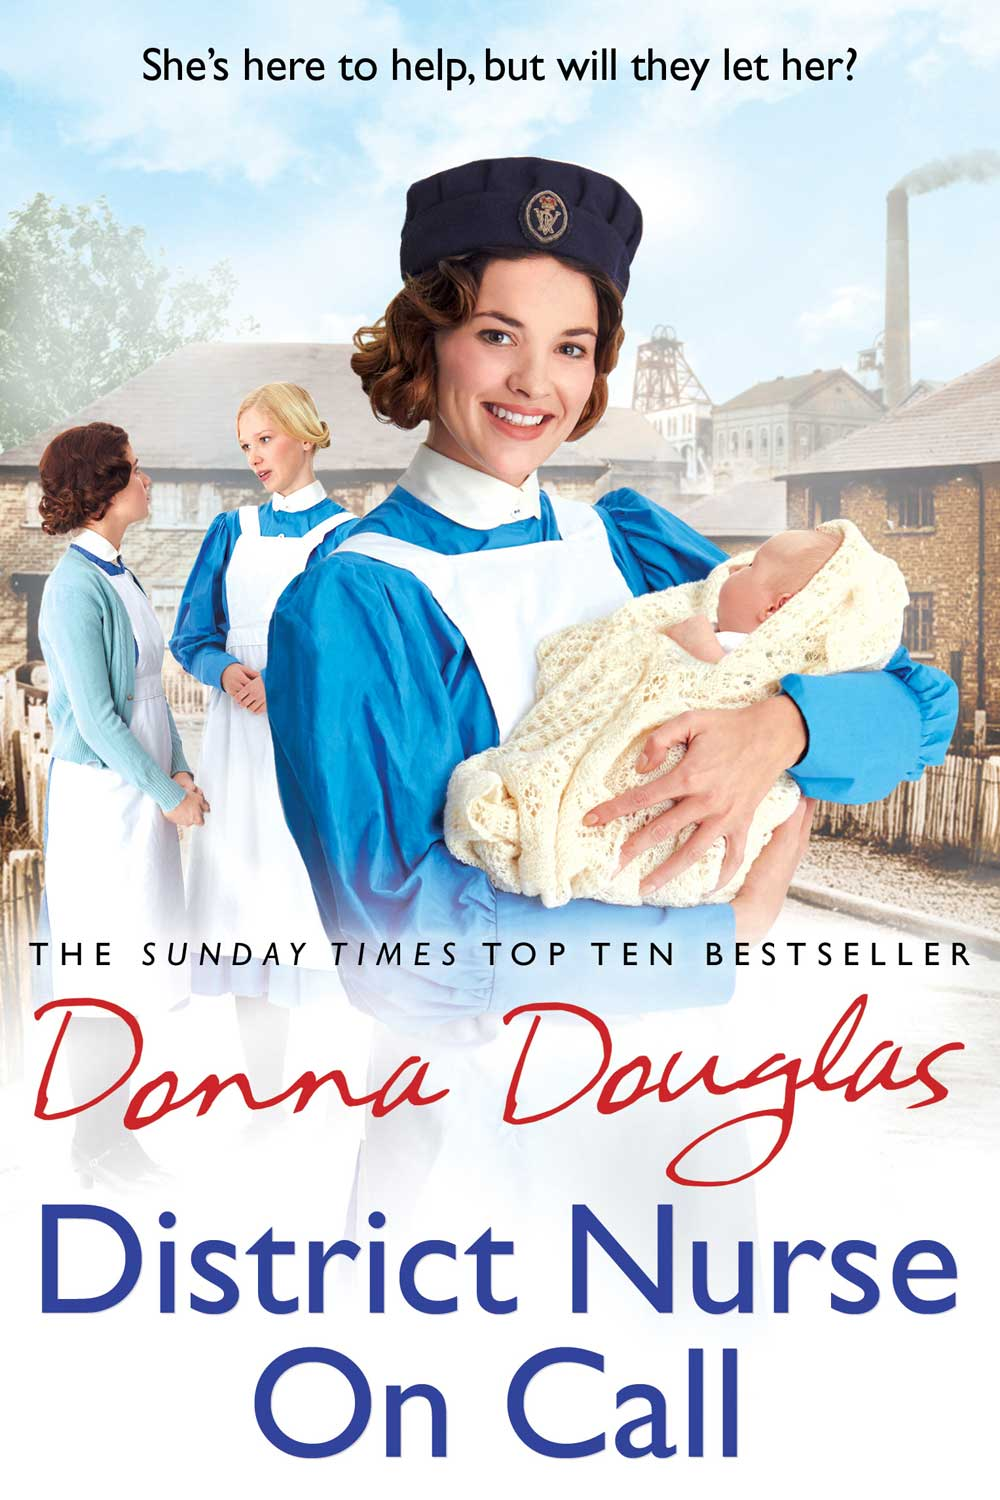 District-Nurse-On-Call-Donna-Douglas